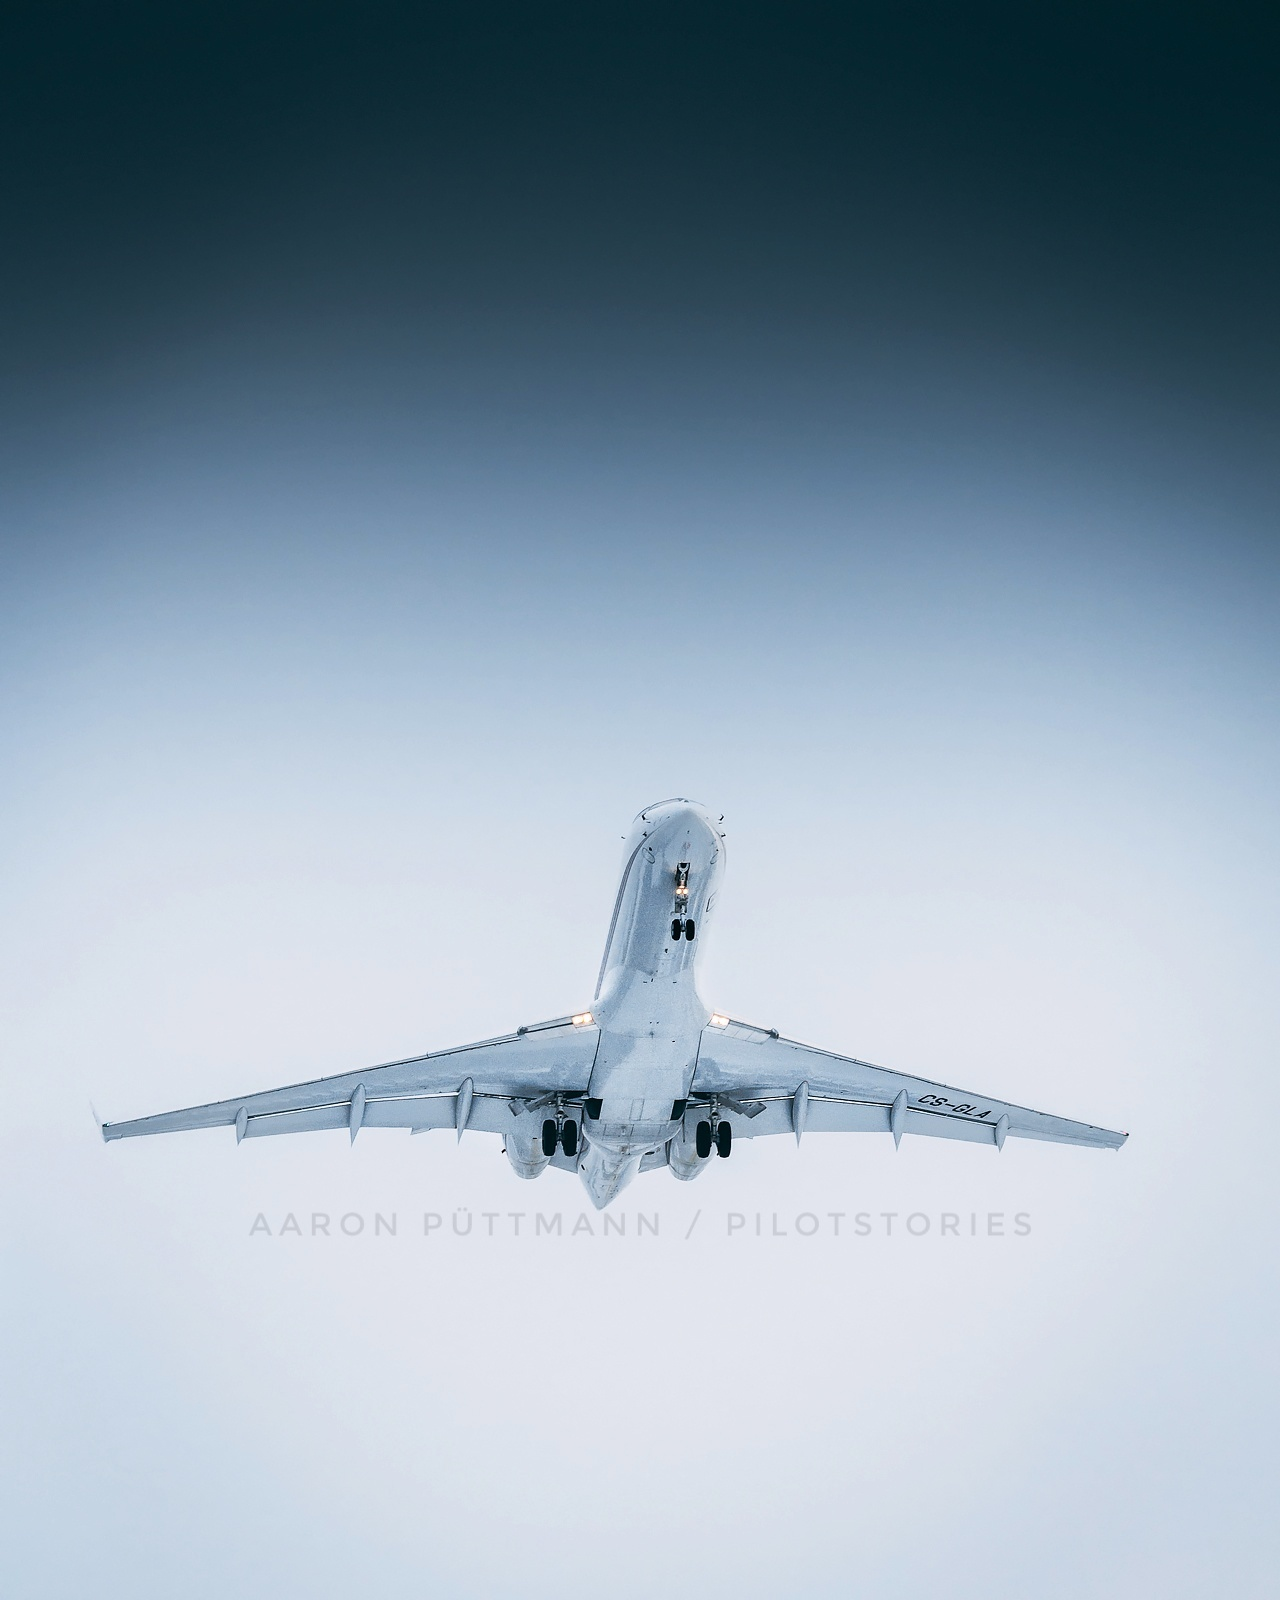 Aircraft Wallpapers For Your Smartphone (Full-HD